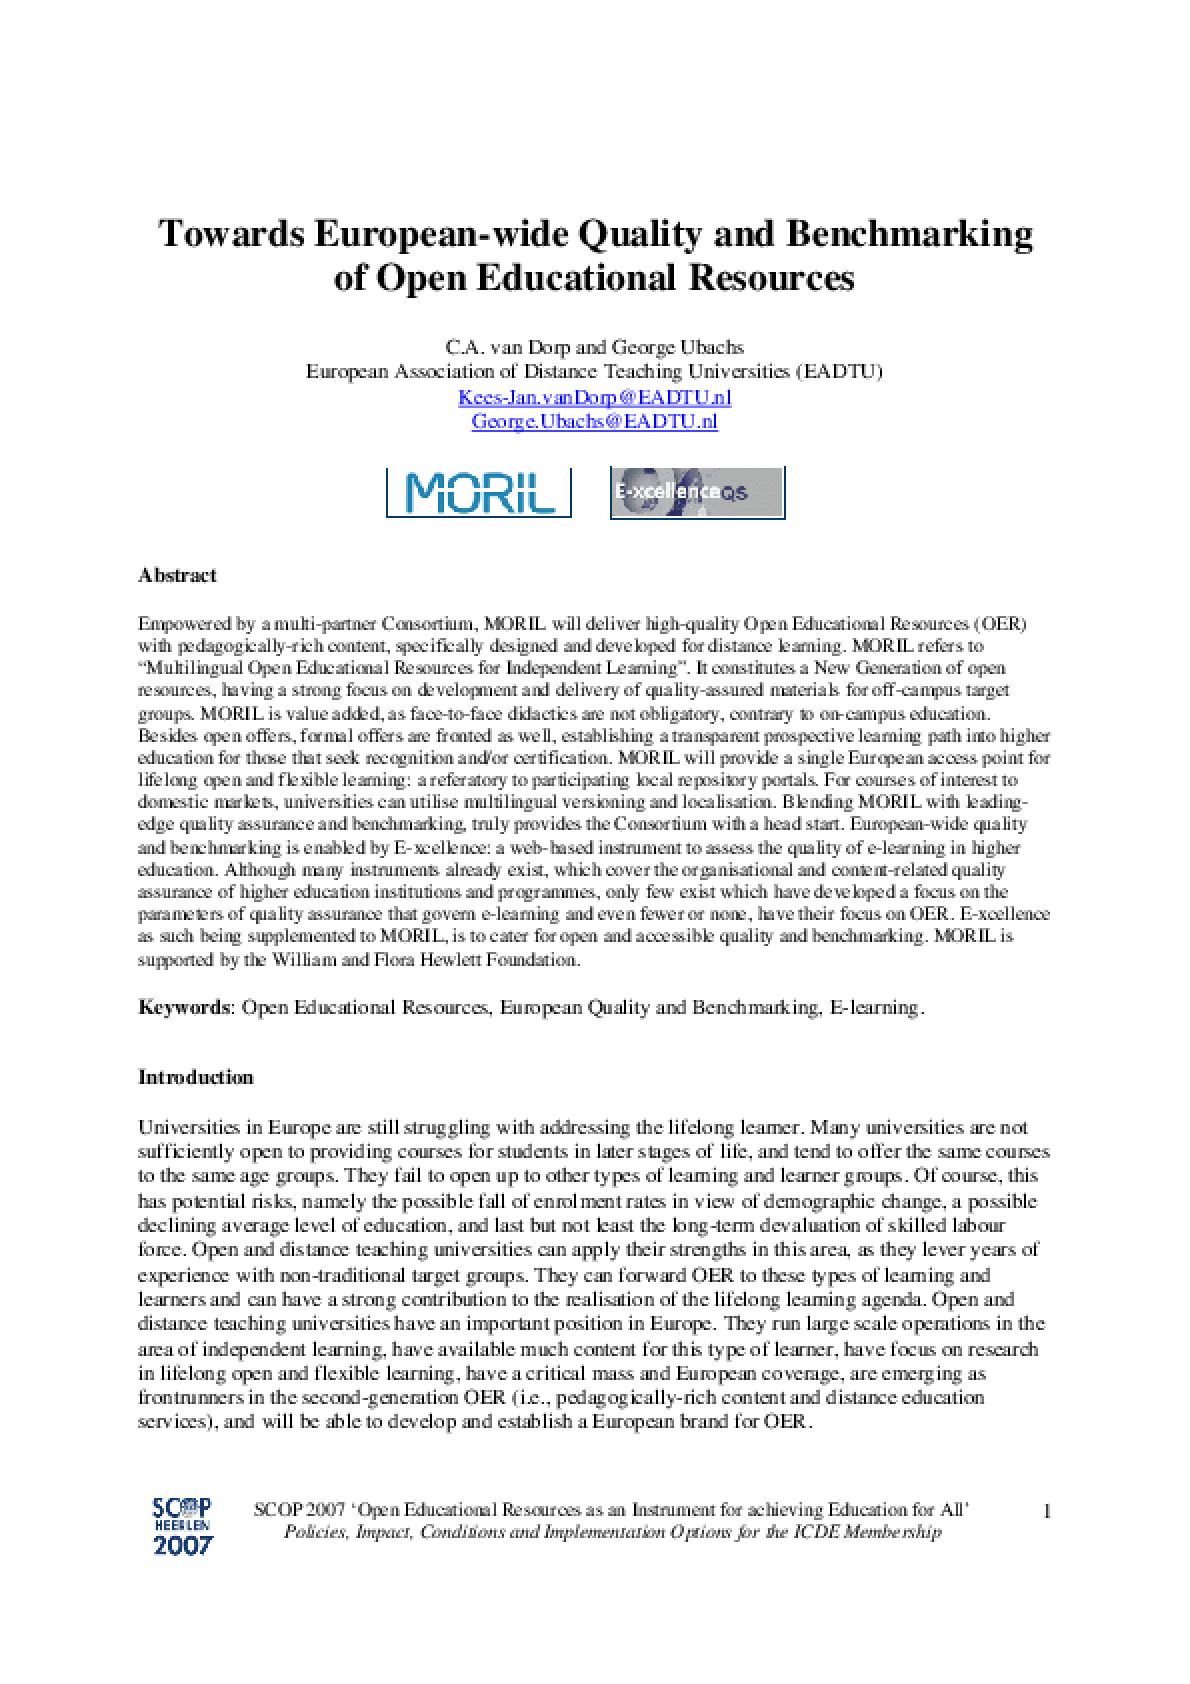 Towards European-wide Quality and Benchmarking of Open Educational Resources